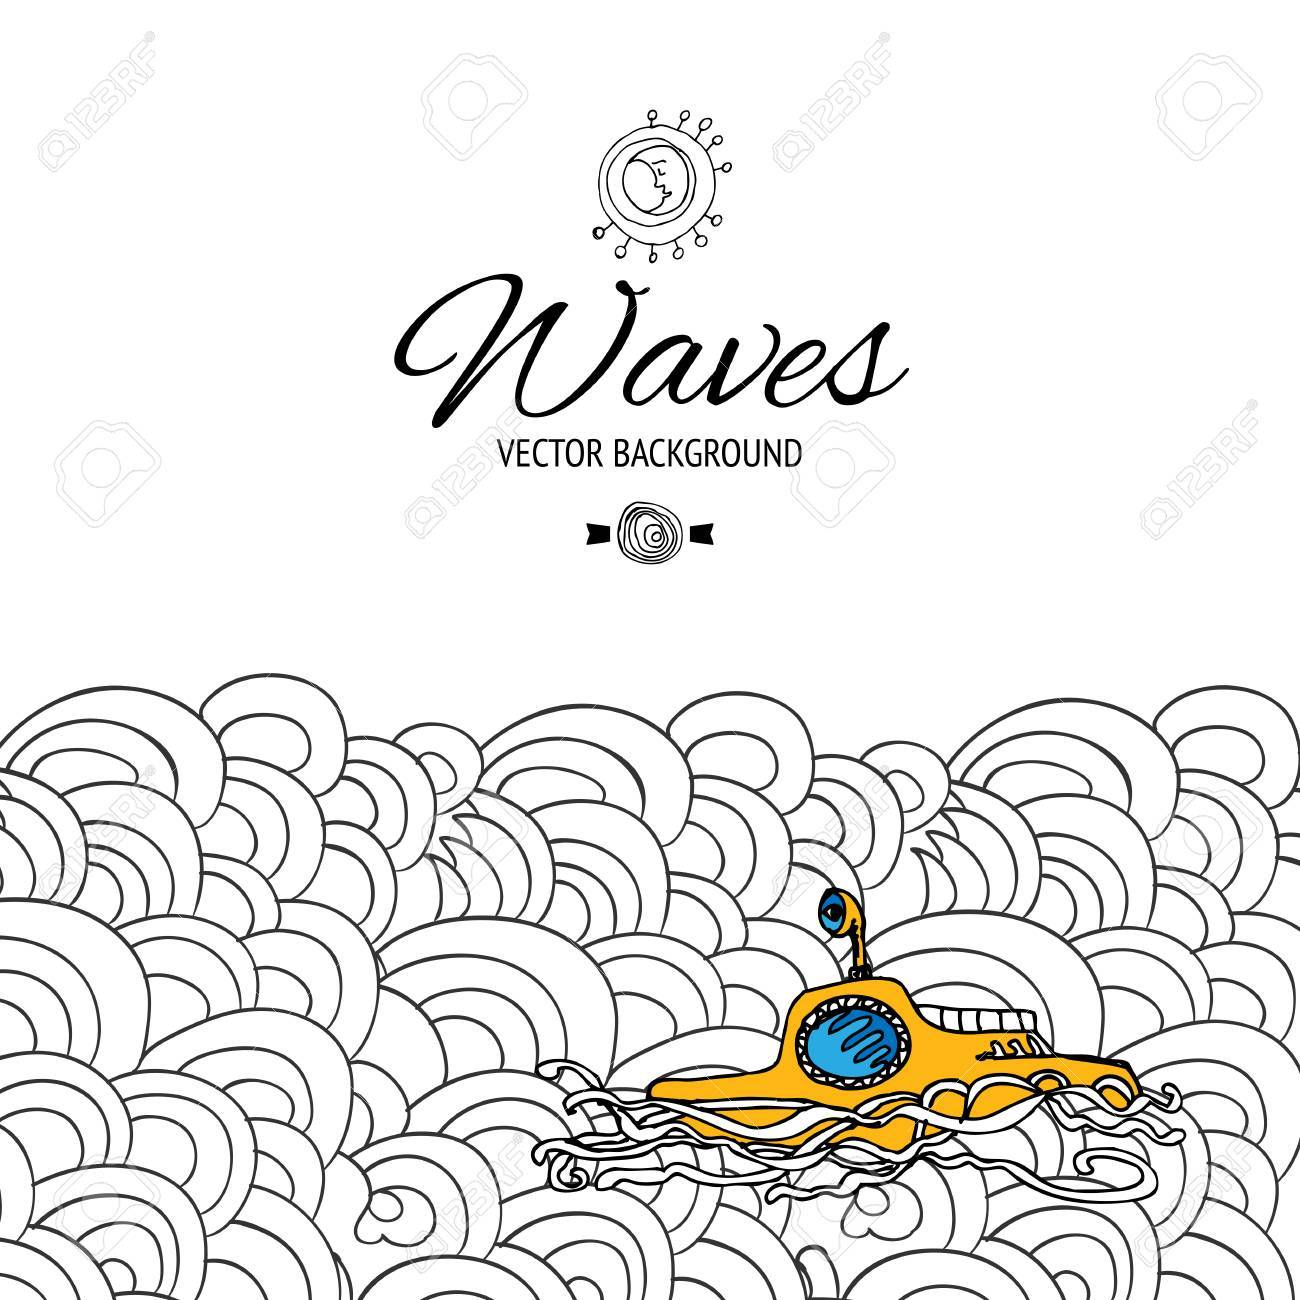 1300x1300 Sea Waves With Yellow Submarine Vector Illustration. Travel Banner